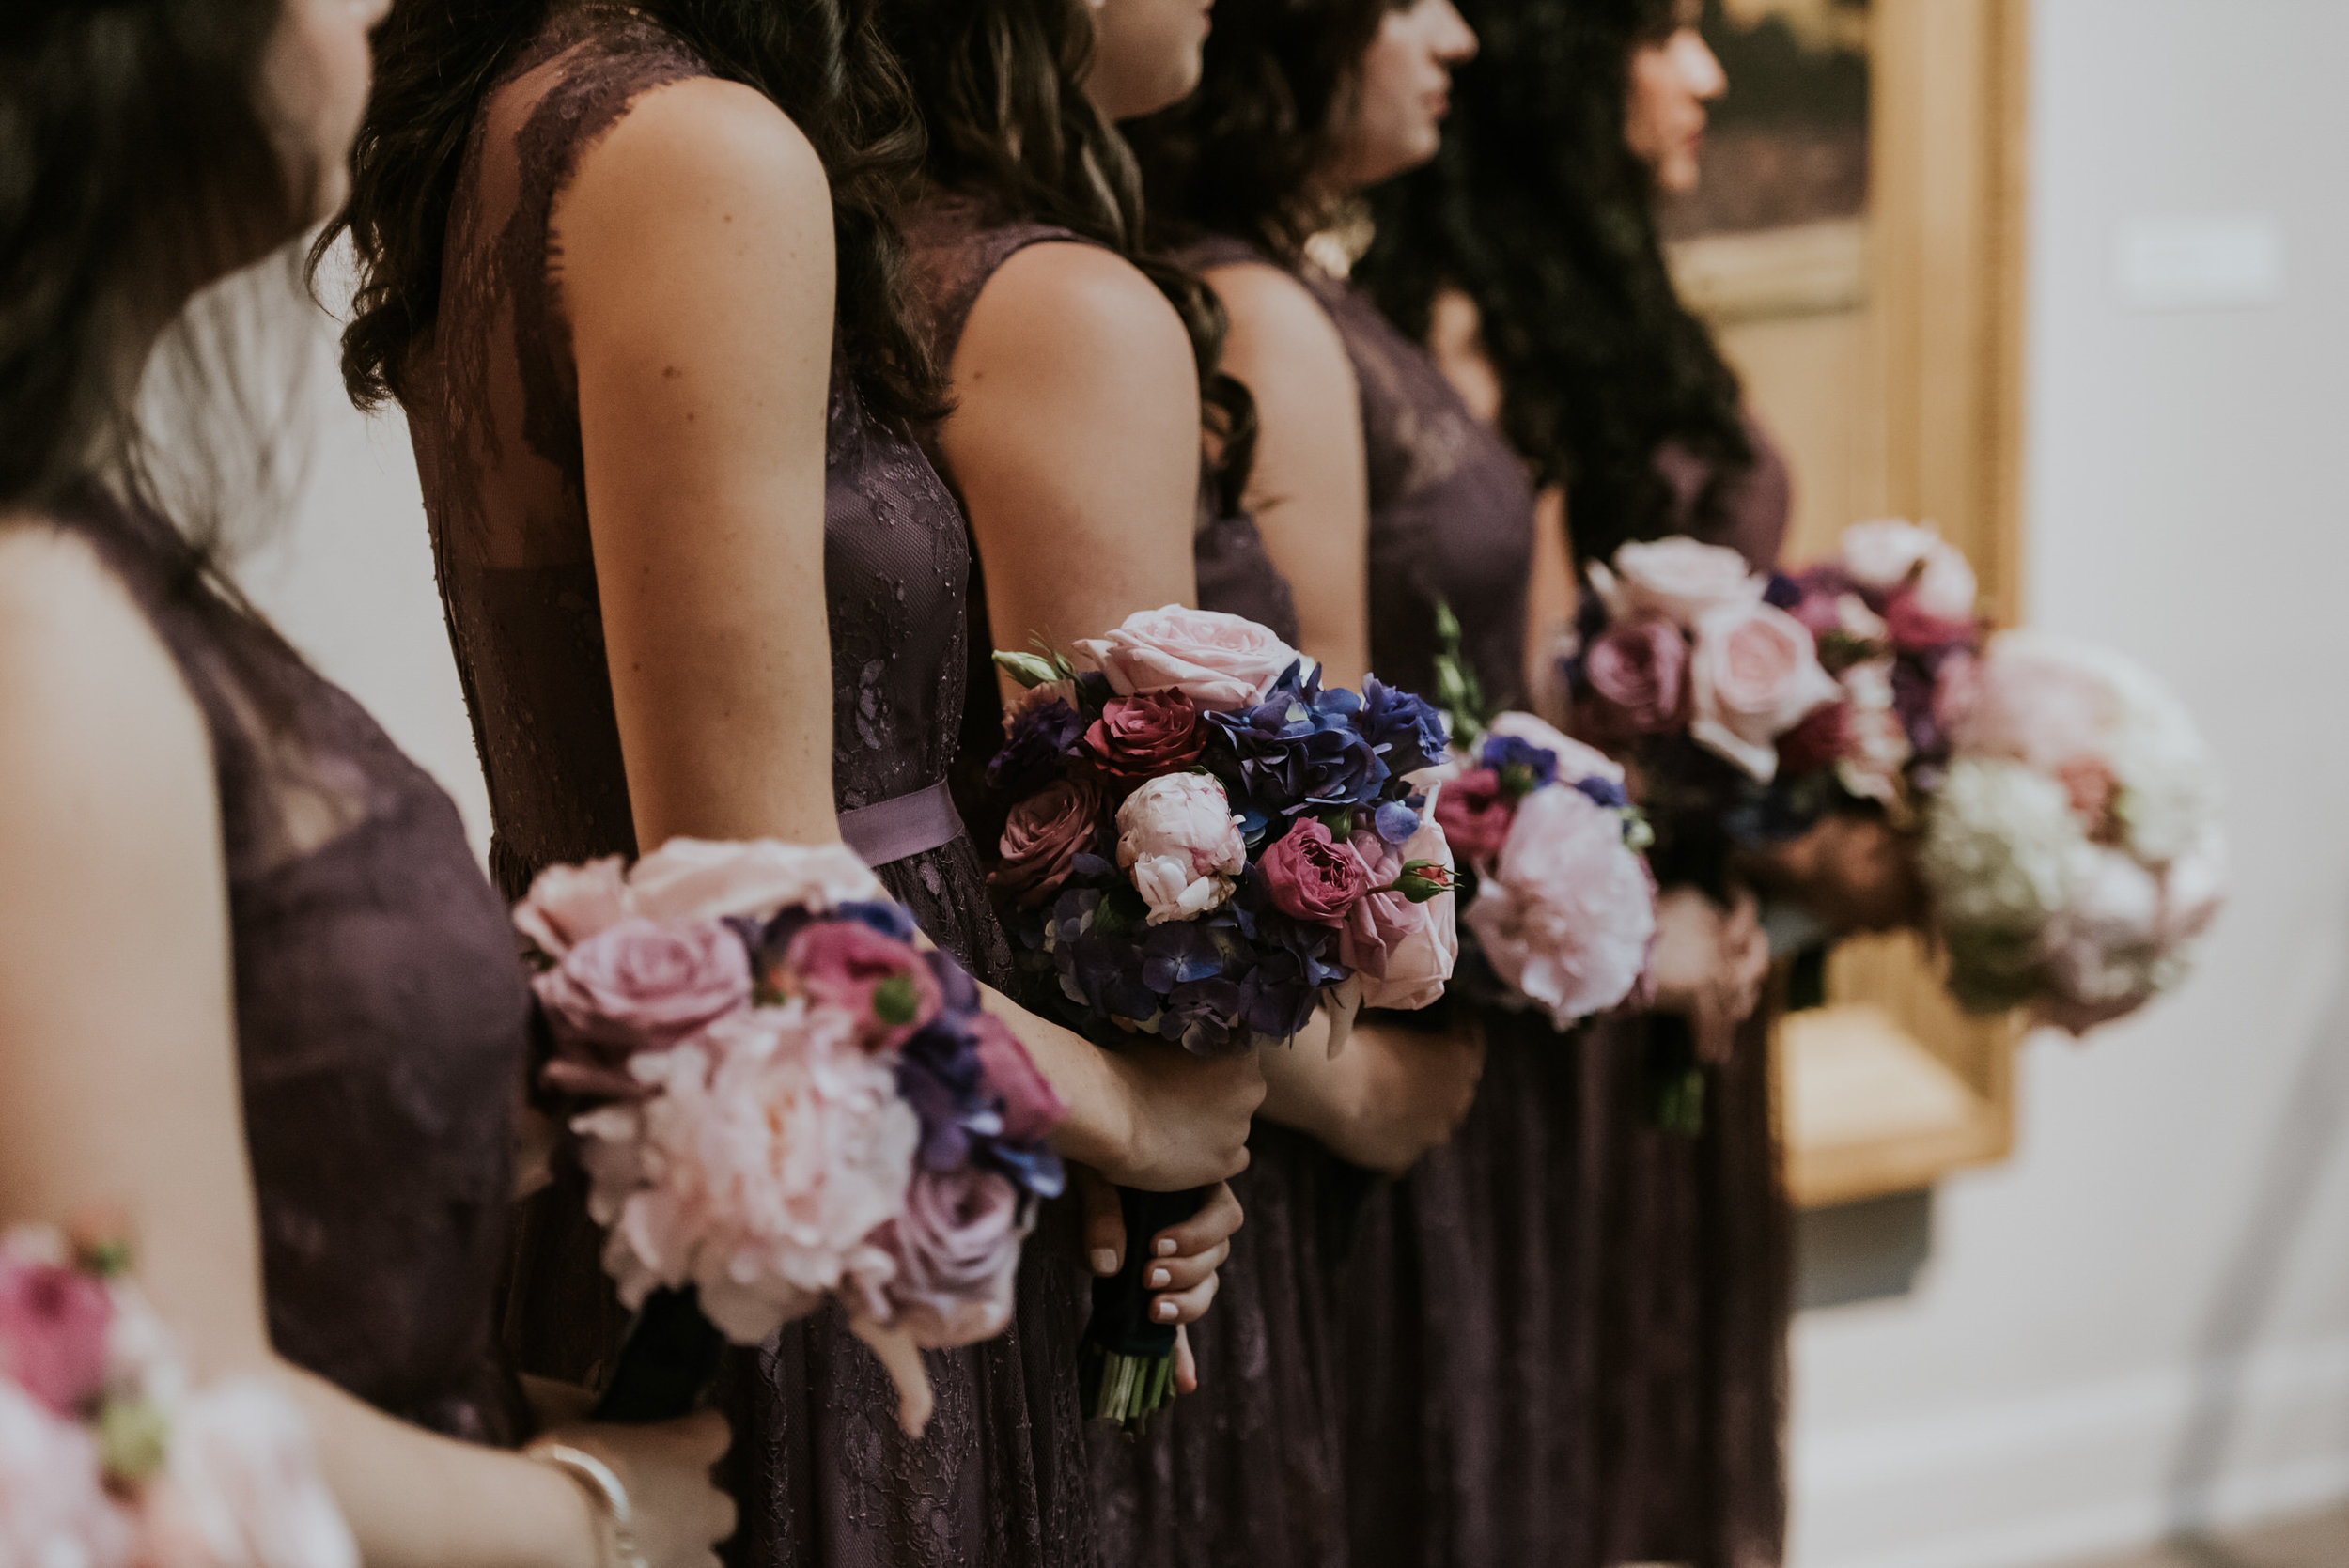 17 Philadelphia Wedding PAFA BHLDN Bridesmaids Bouquets Aribella Events.jpg